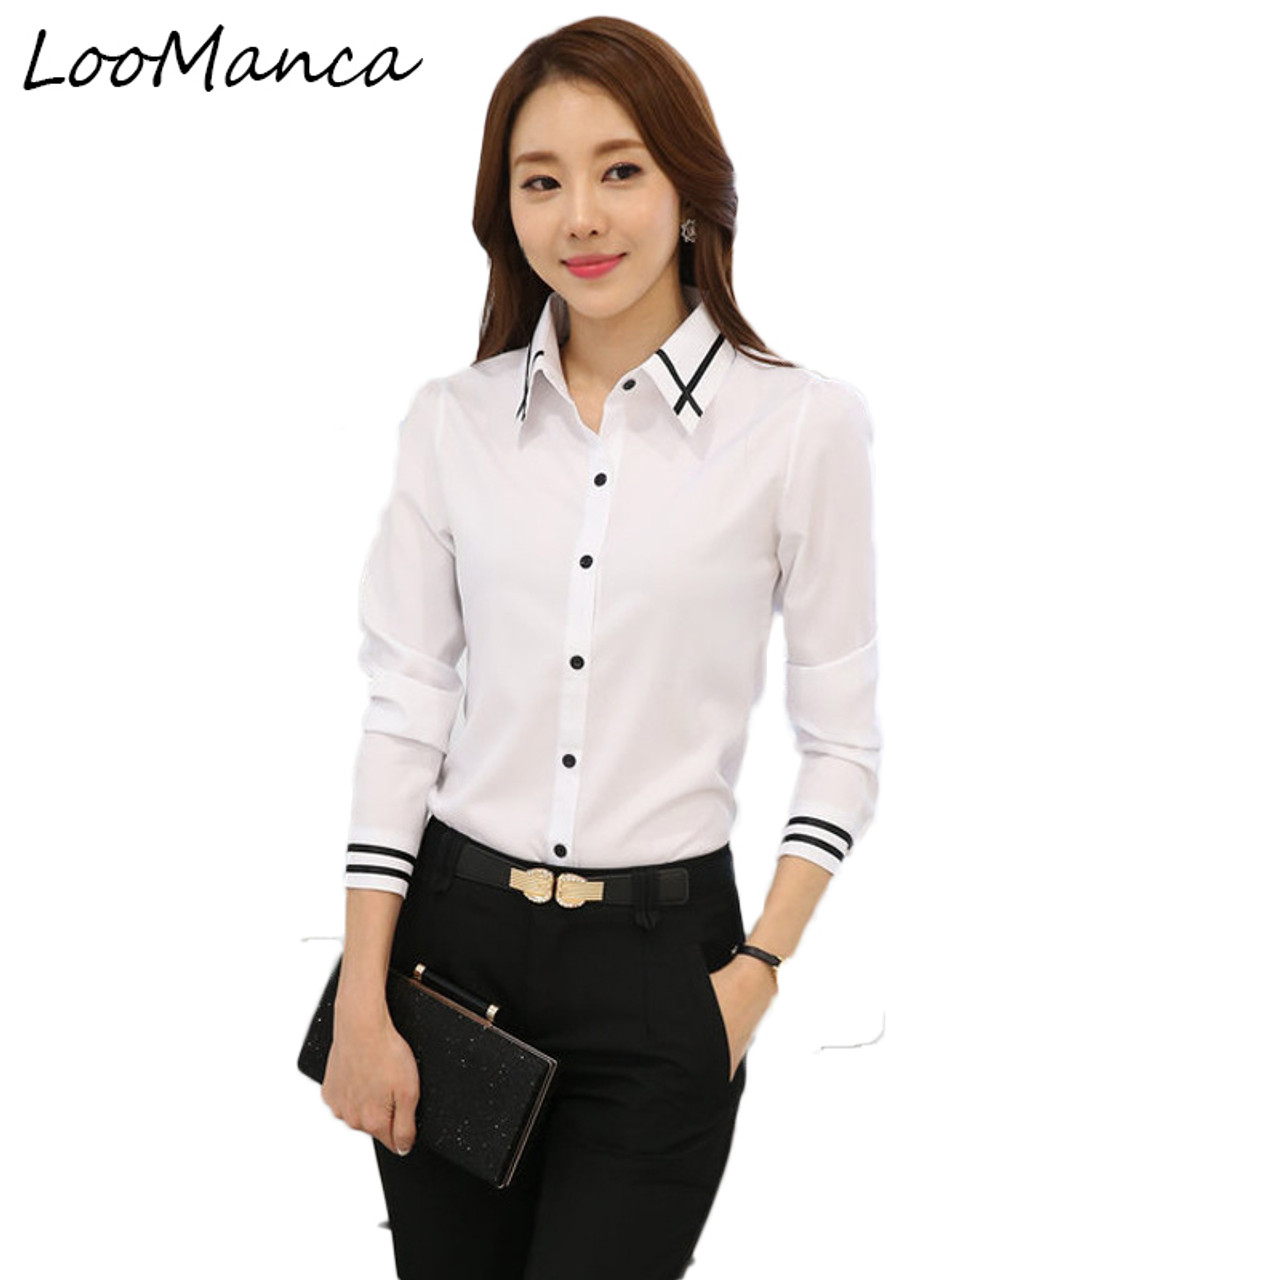 b06356c10b1e7 2018 New Chiffon blouses shirts Women Blue White Shirt OL Office Lady Full  sleeves Work Wear Tops Plus Size Blusas Femininas